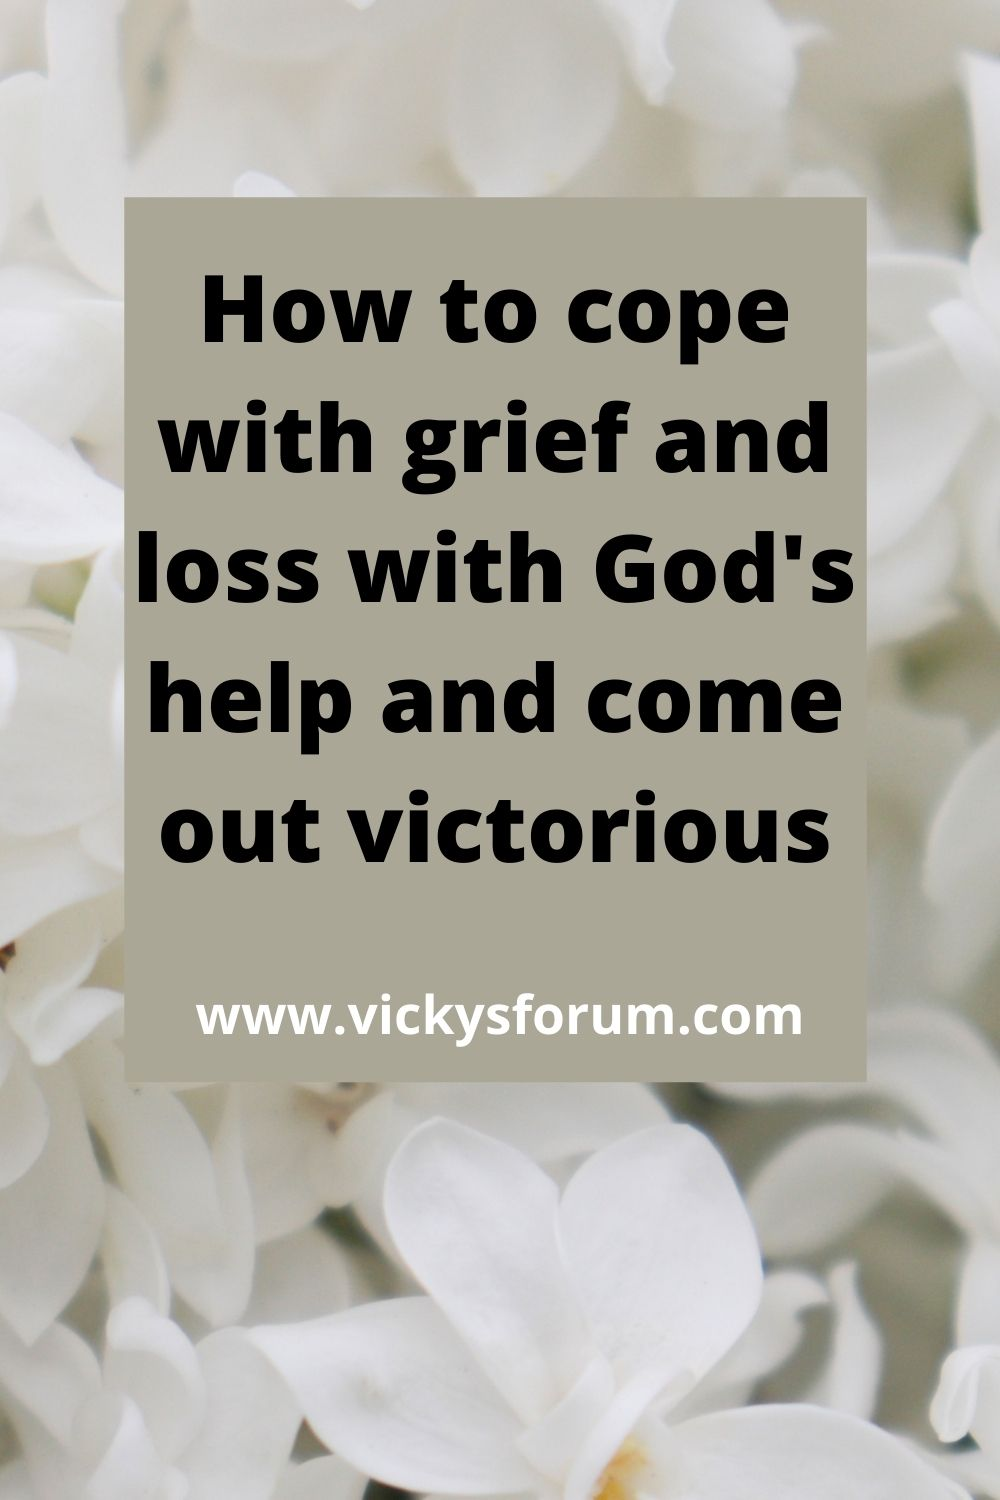 How to cope with grief and loss